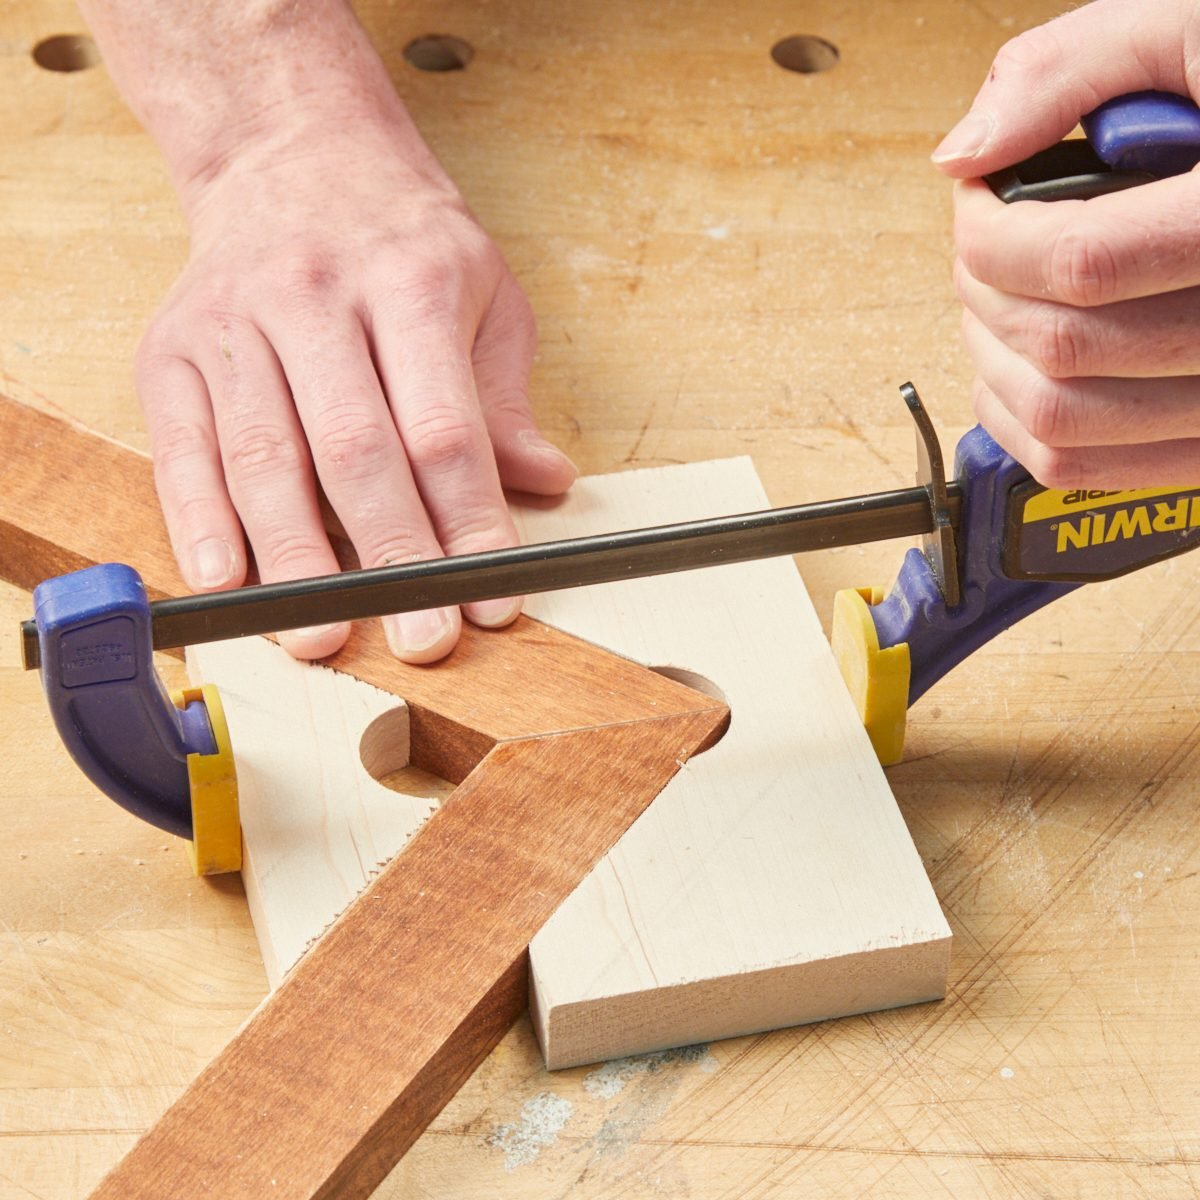 56 Brilliant Woodworking Tips For Beginners The Family Handyman